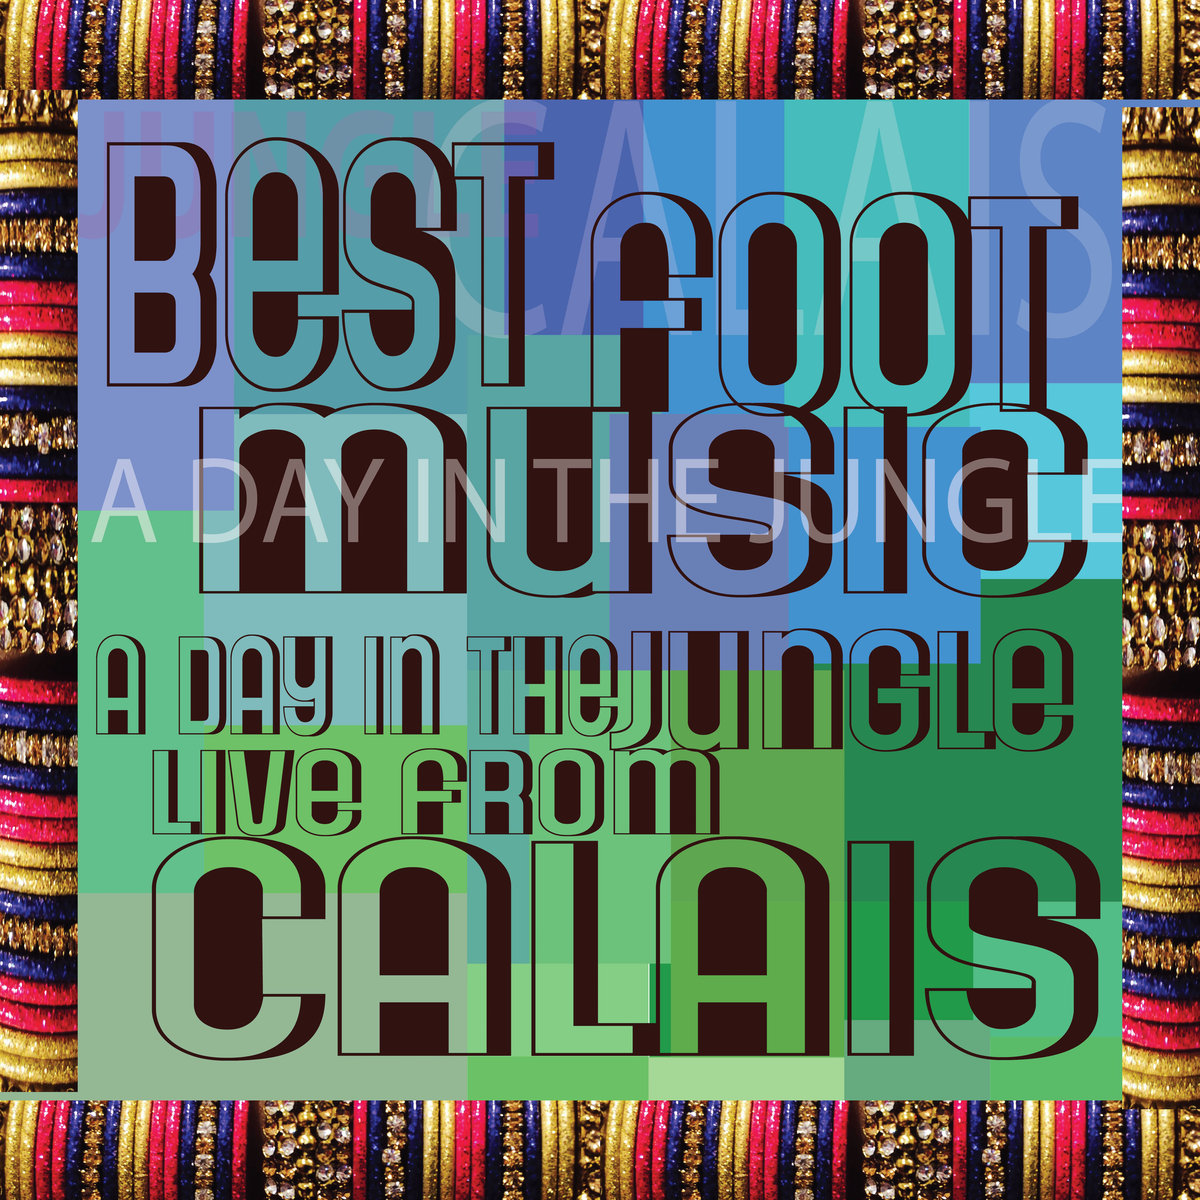 Songlines Calais CD Review